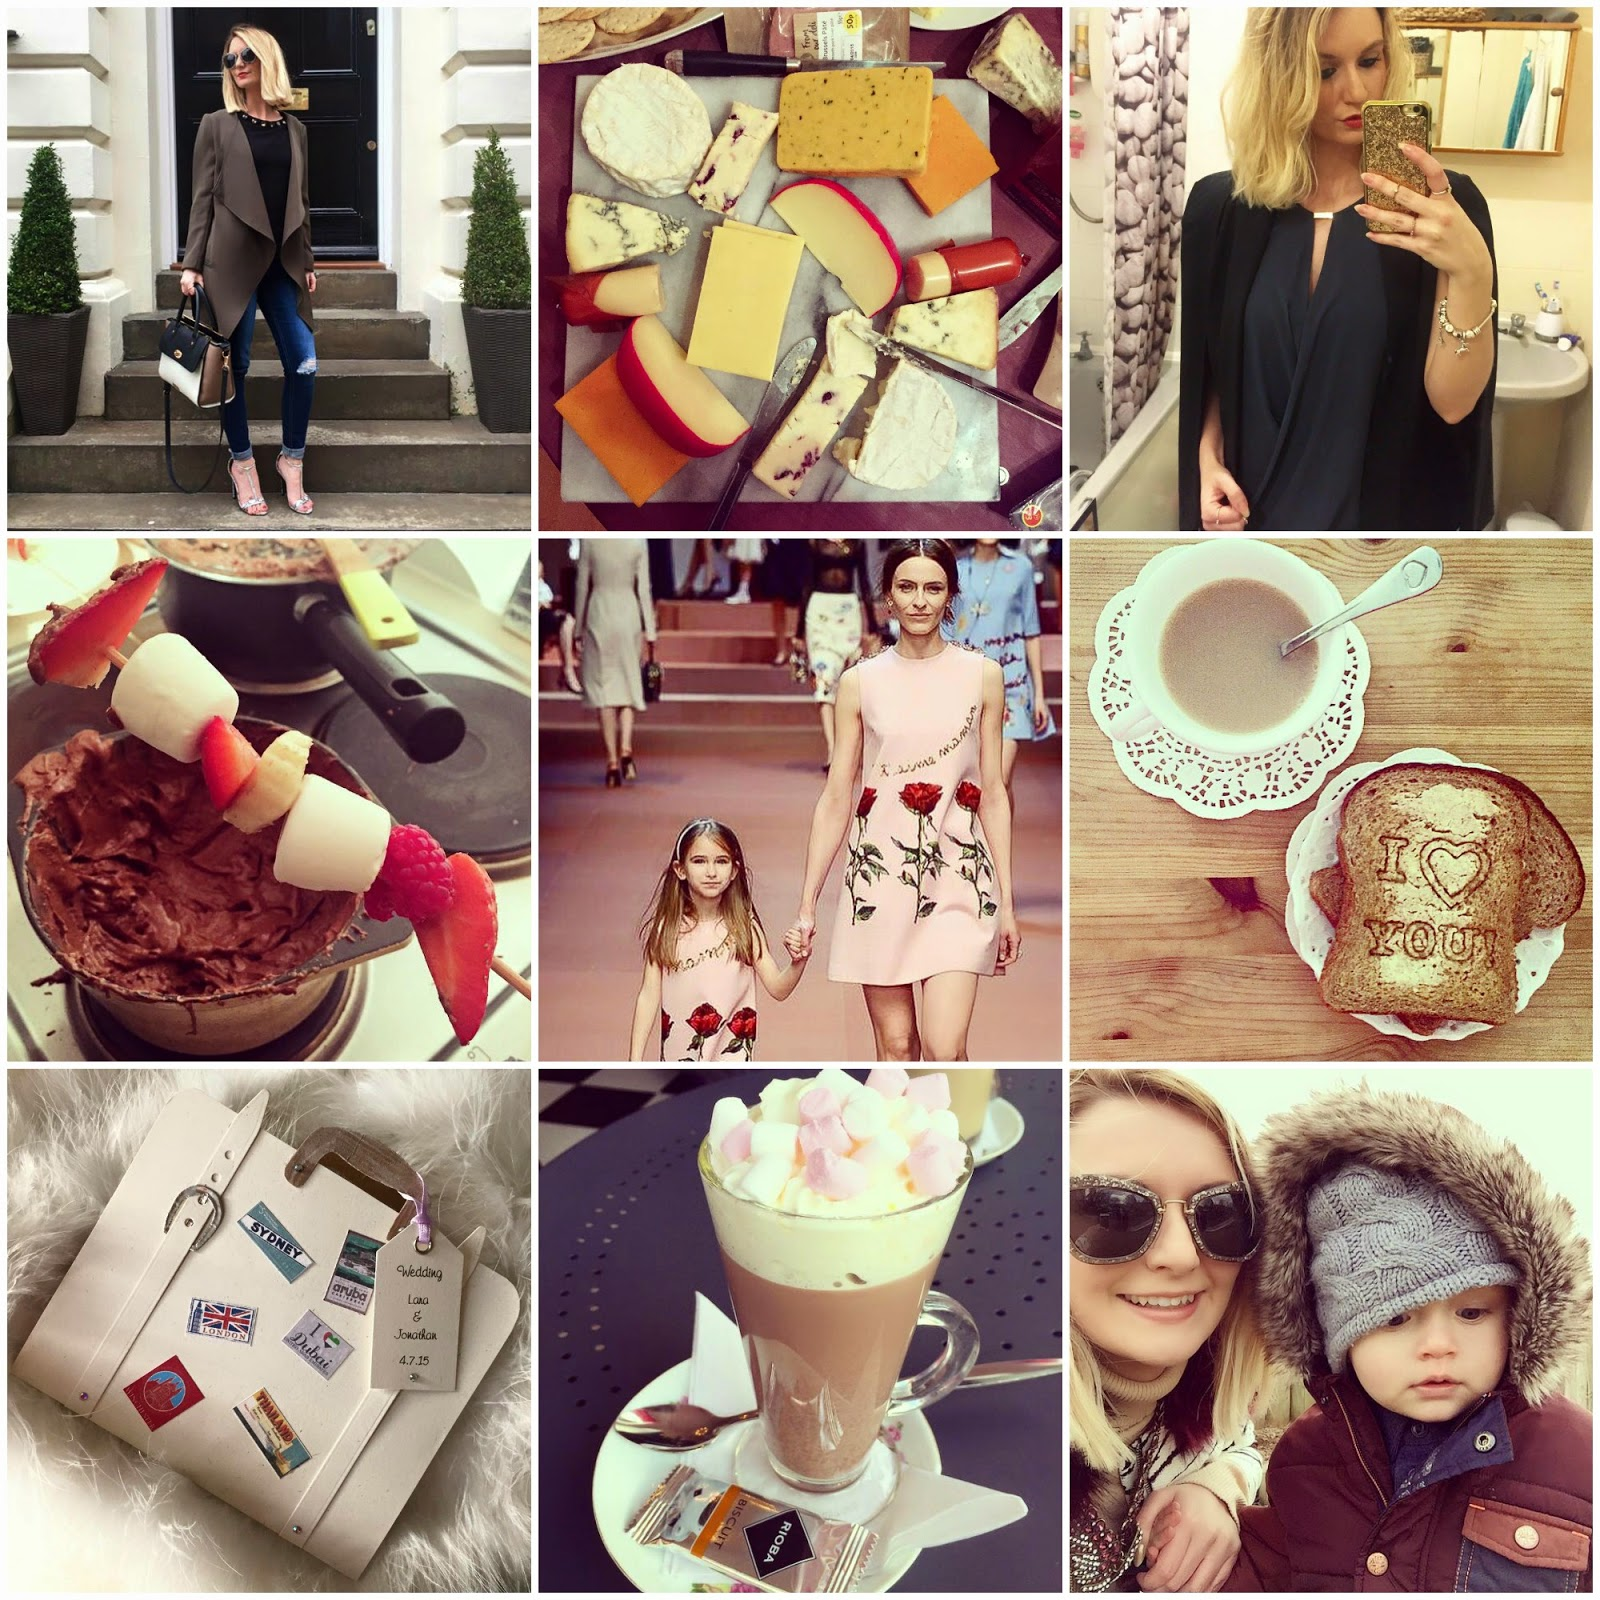 LIFESTYLE: Happy Highlights from my Week, lifestyle, my week in pictures, my month in pictures, lifestyle blogger, modemadeleine, photo montage, memories